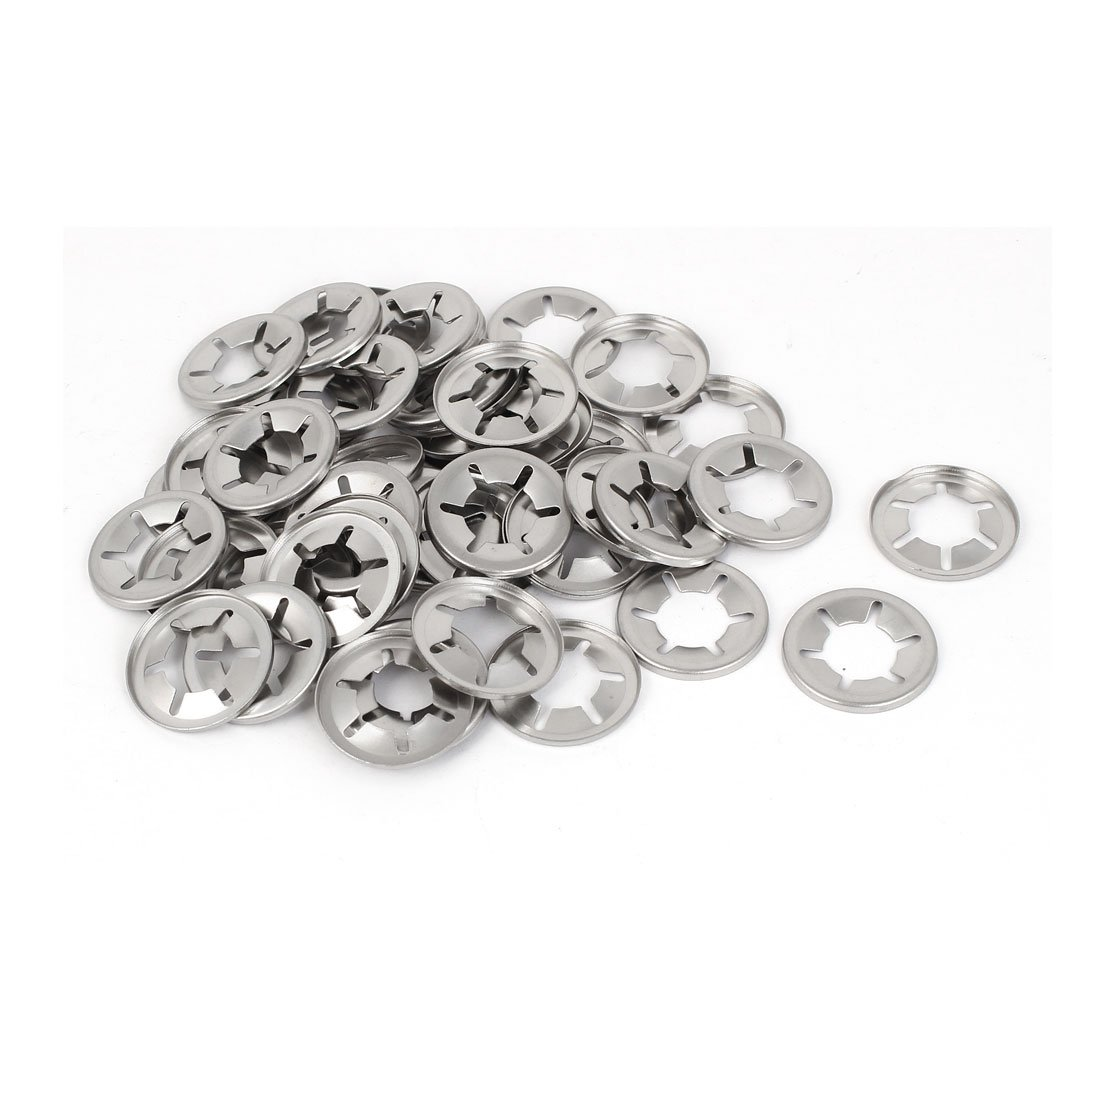 uxcell 5mm Inner Diameter 304 Stainless Steel Starlock Internal Tooth Washers 50 Pcs